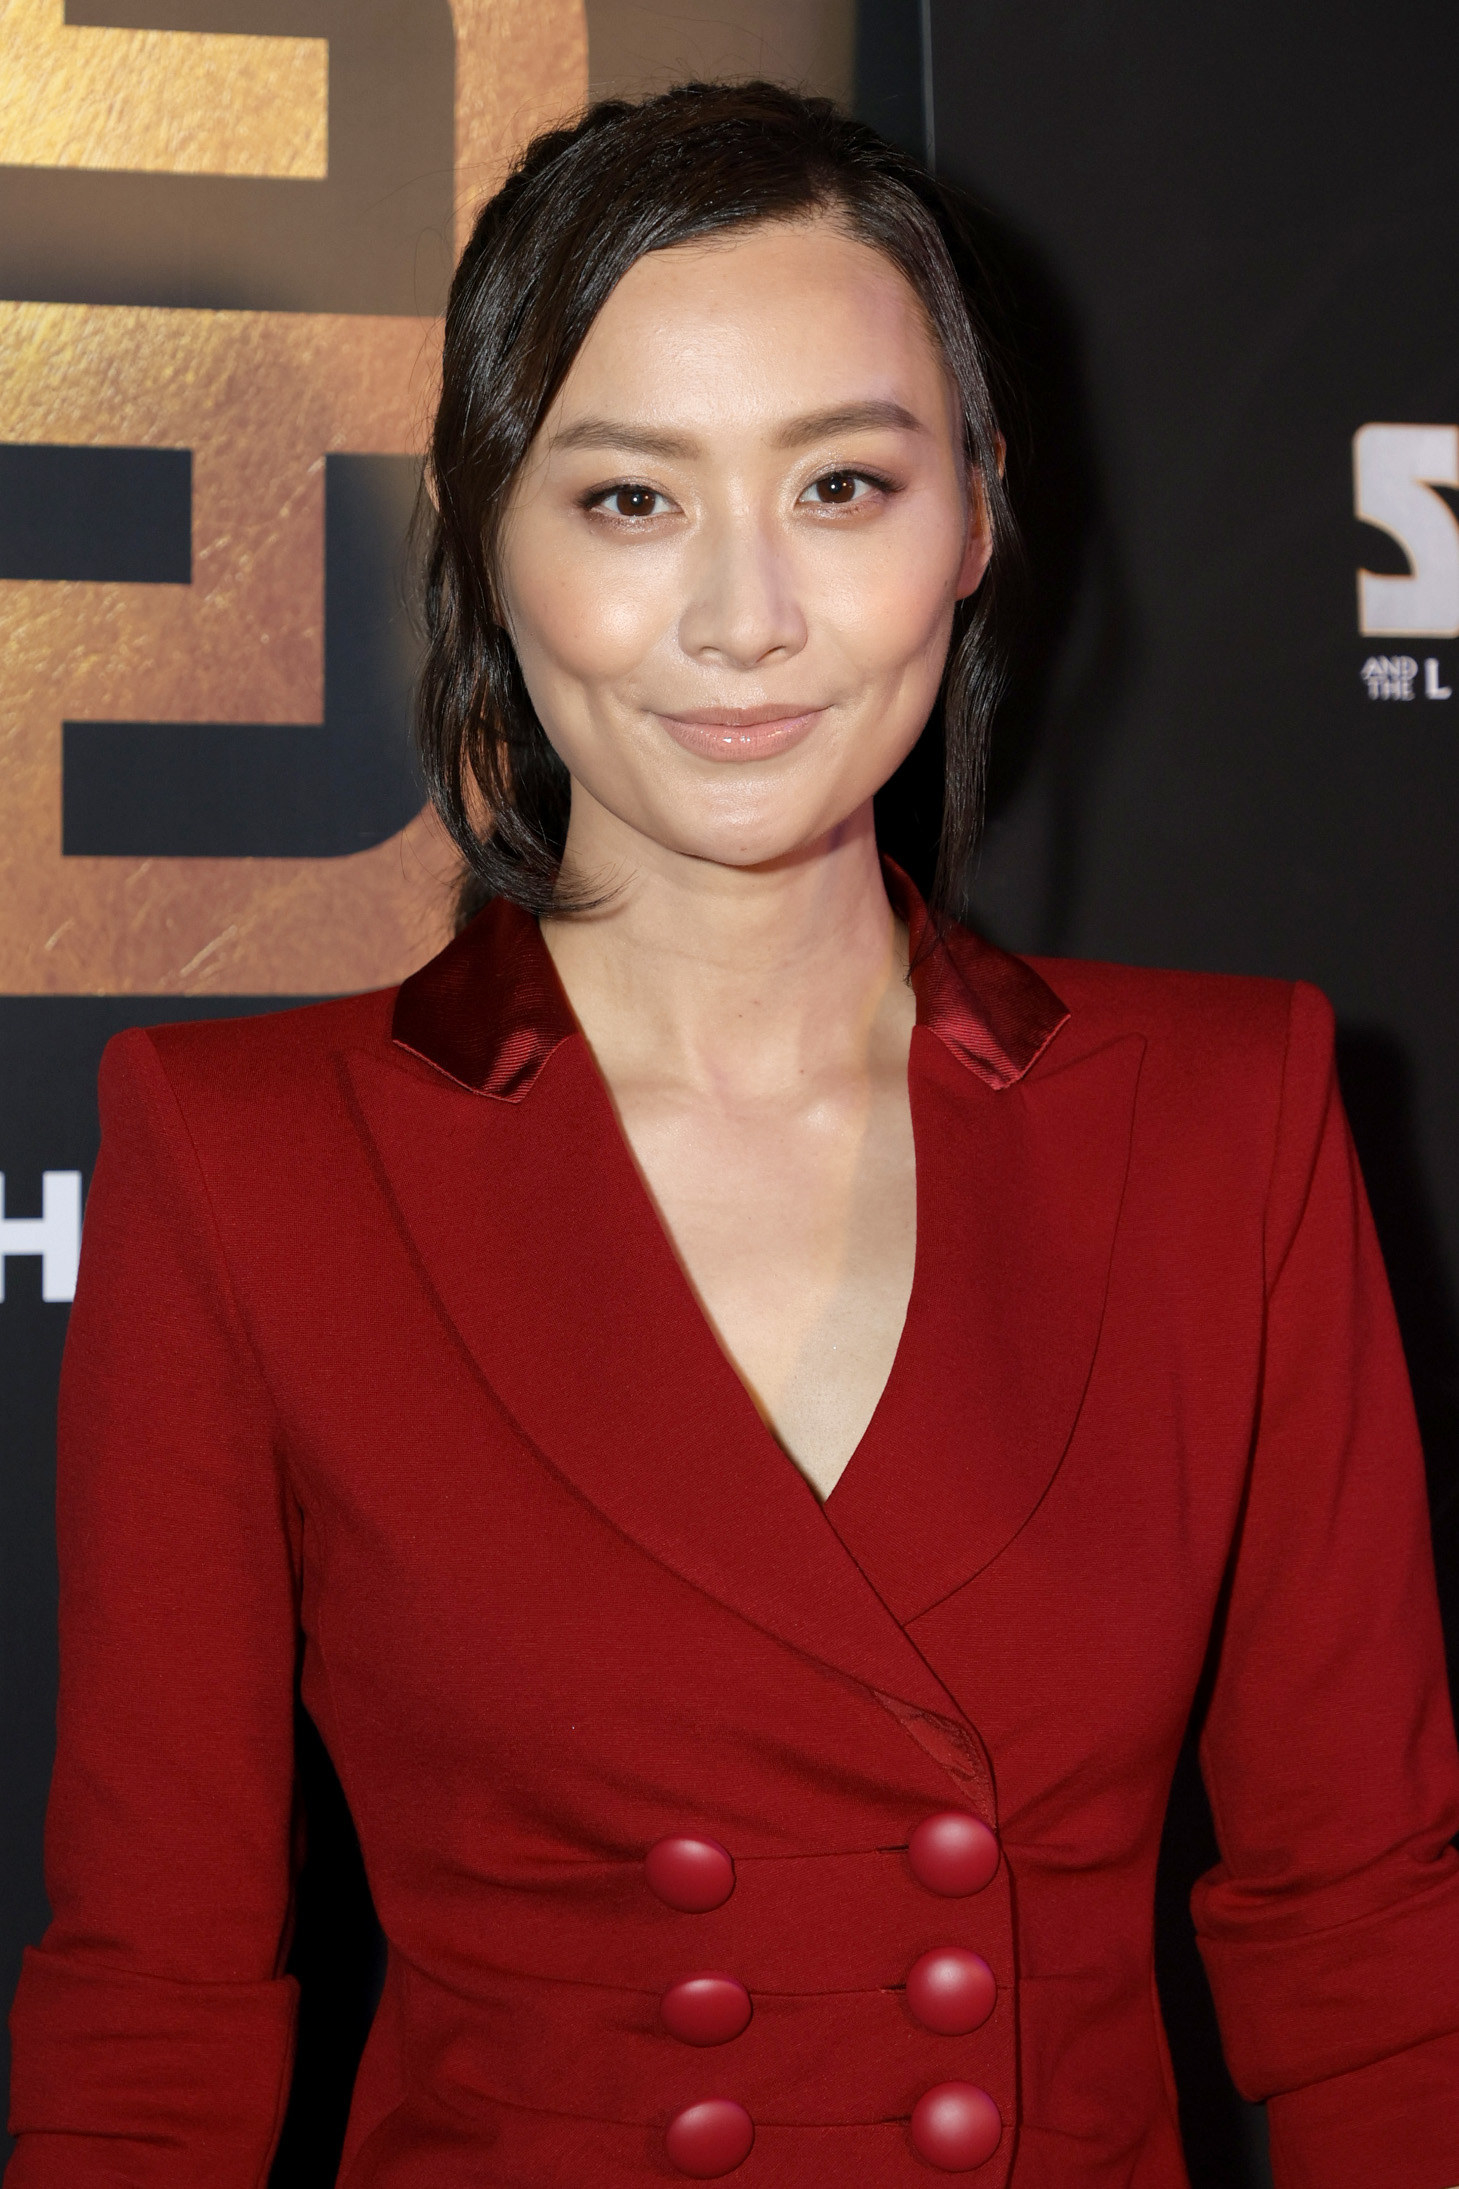 Fala Chen on the red carpet